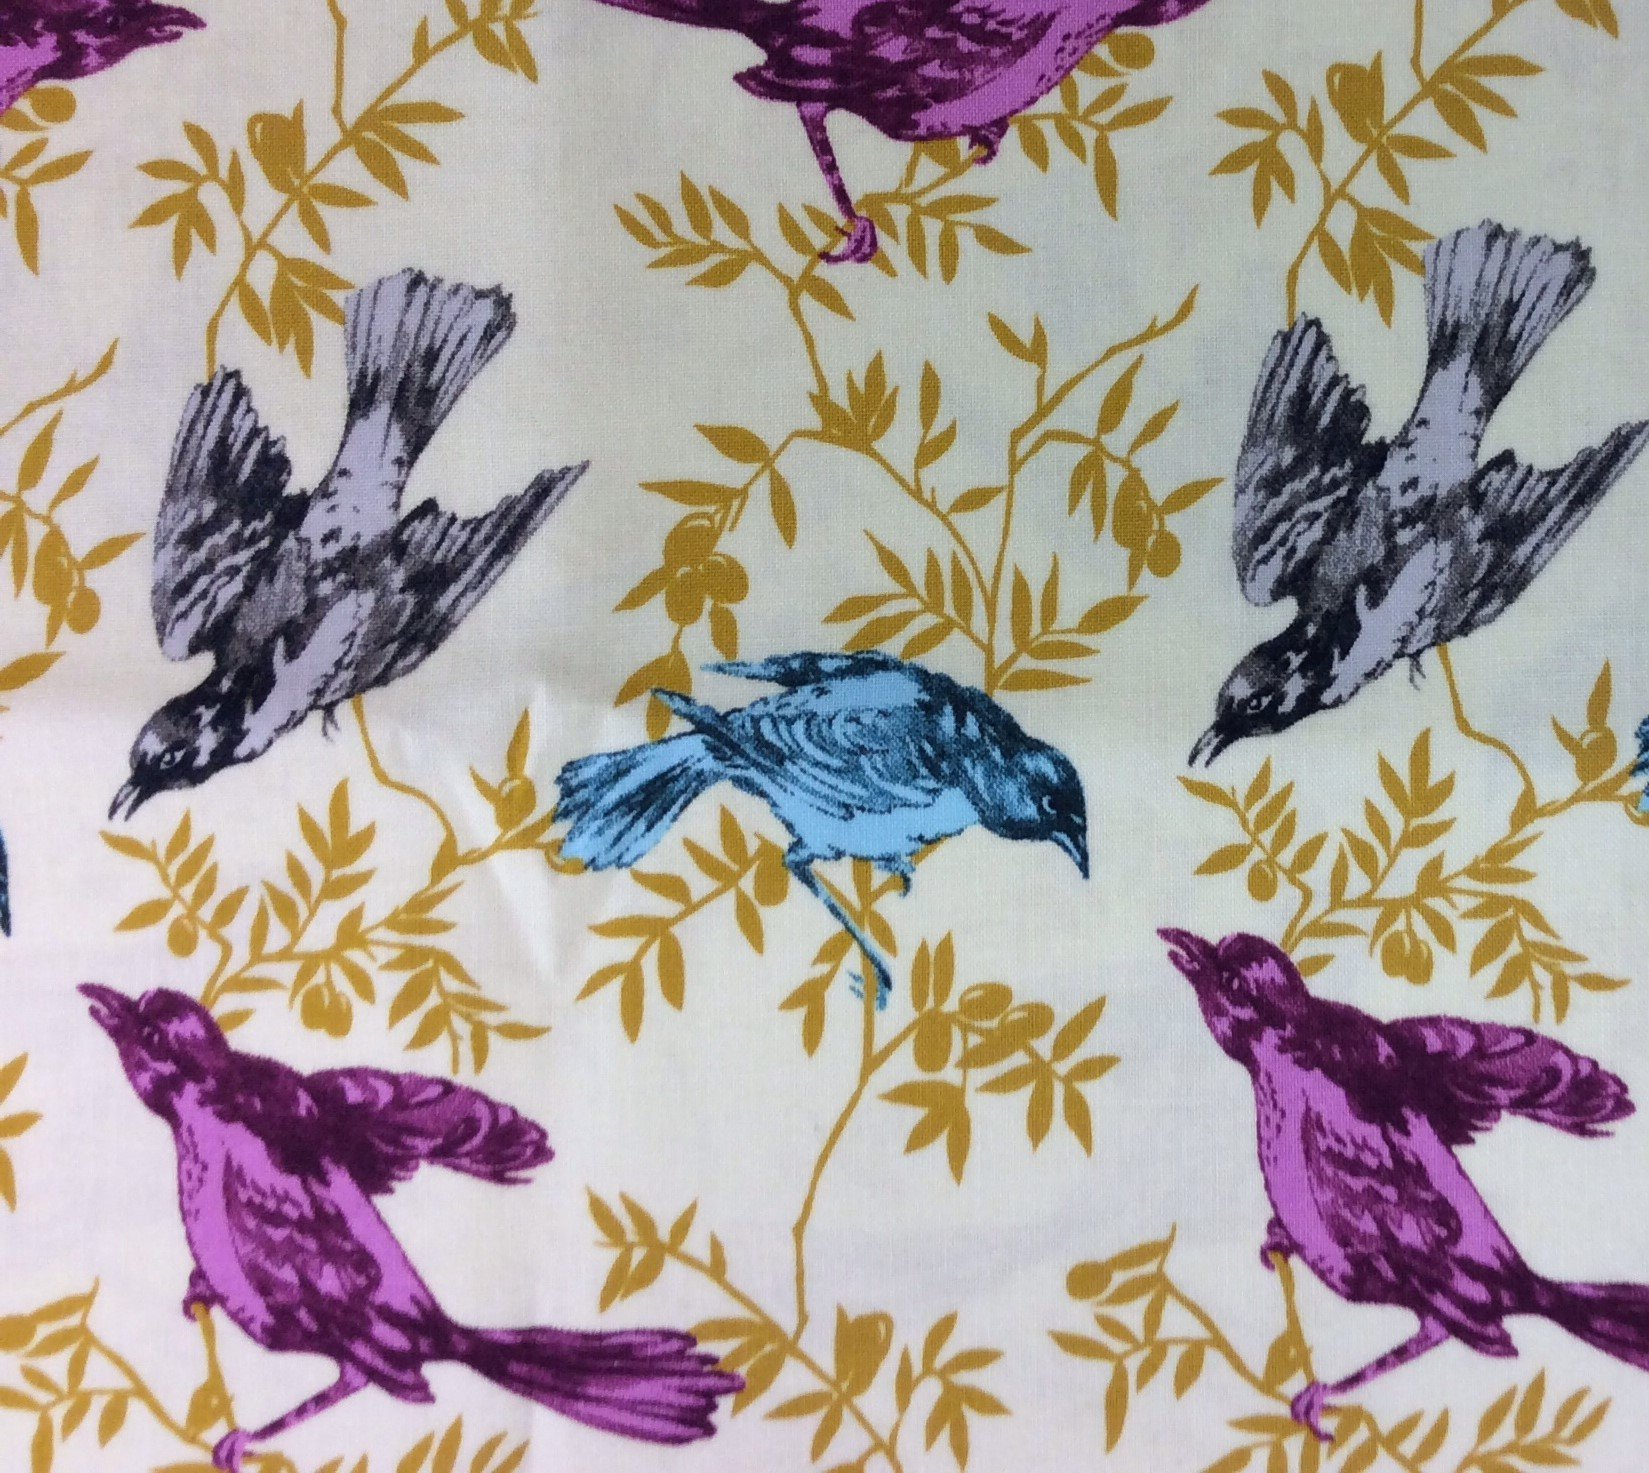 Neon Birds Sparrow Leaves Branches Spring Aviary Cotton Quilting Fabric FT50